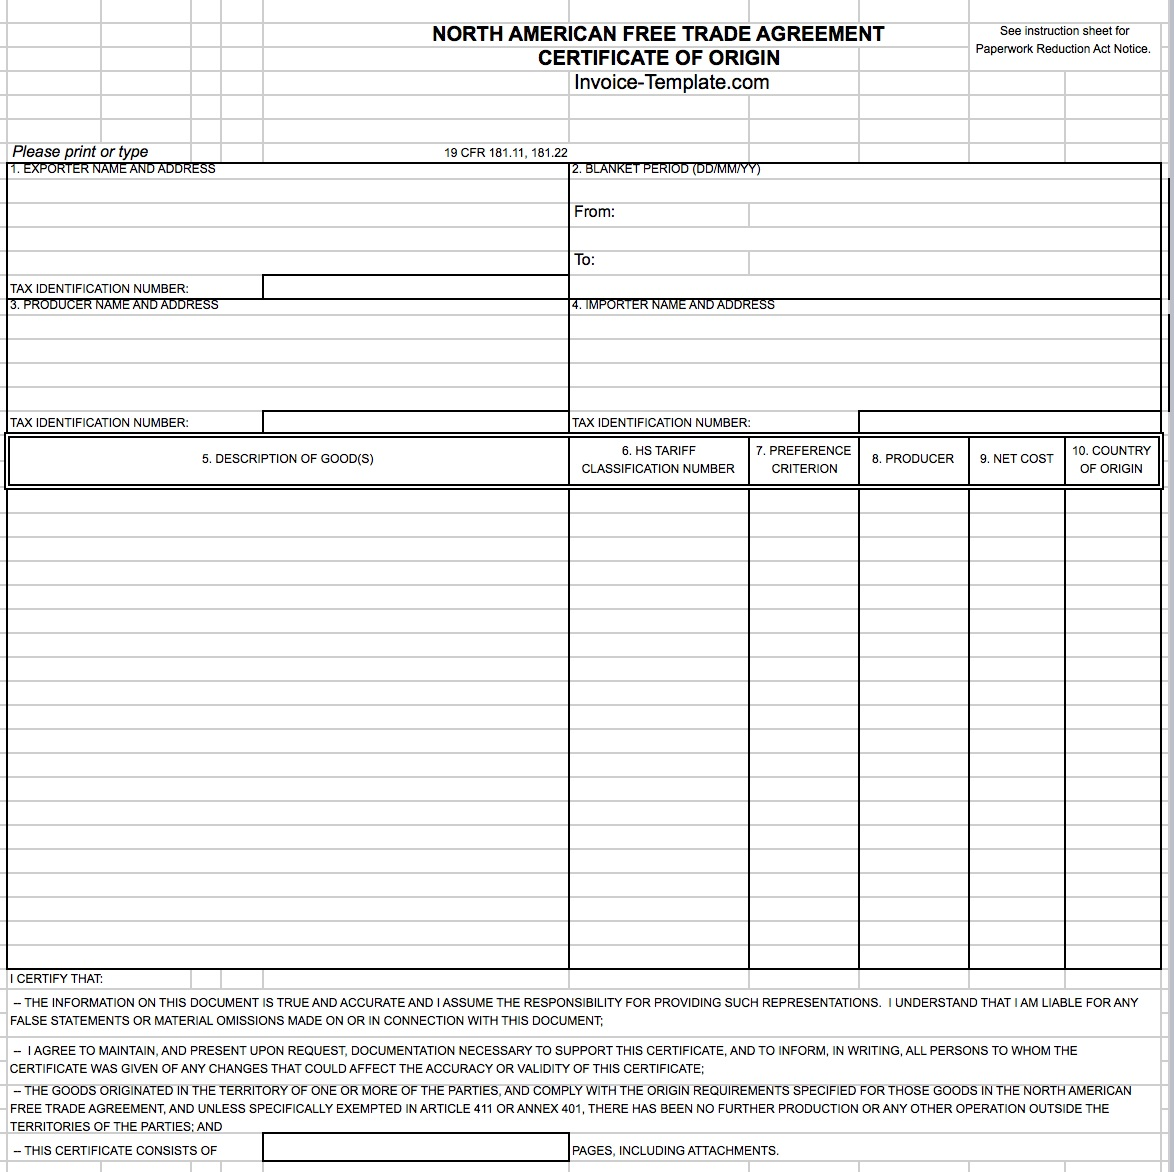 Free General Customs Commercial Invoice Template Excel PDF - Customs invoice template